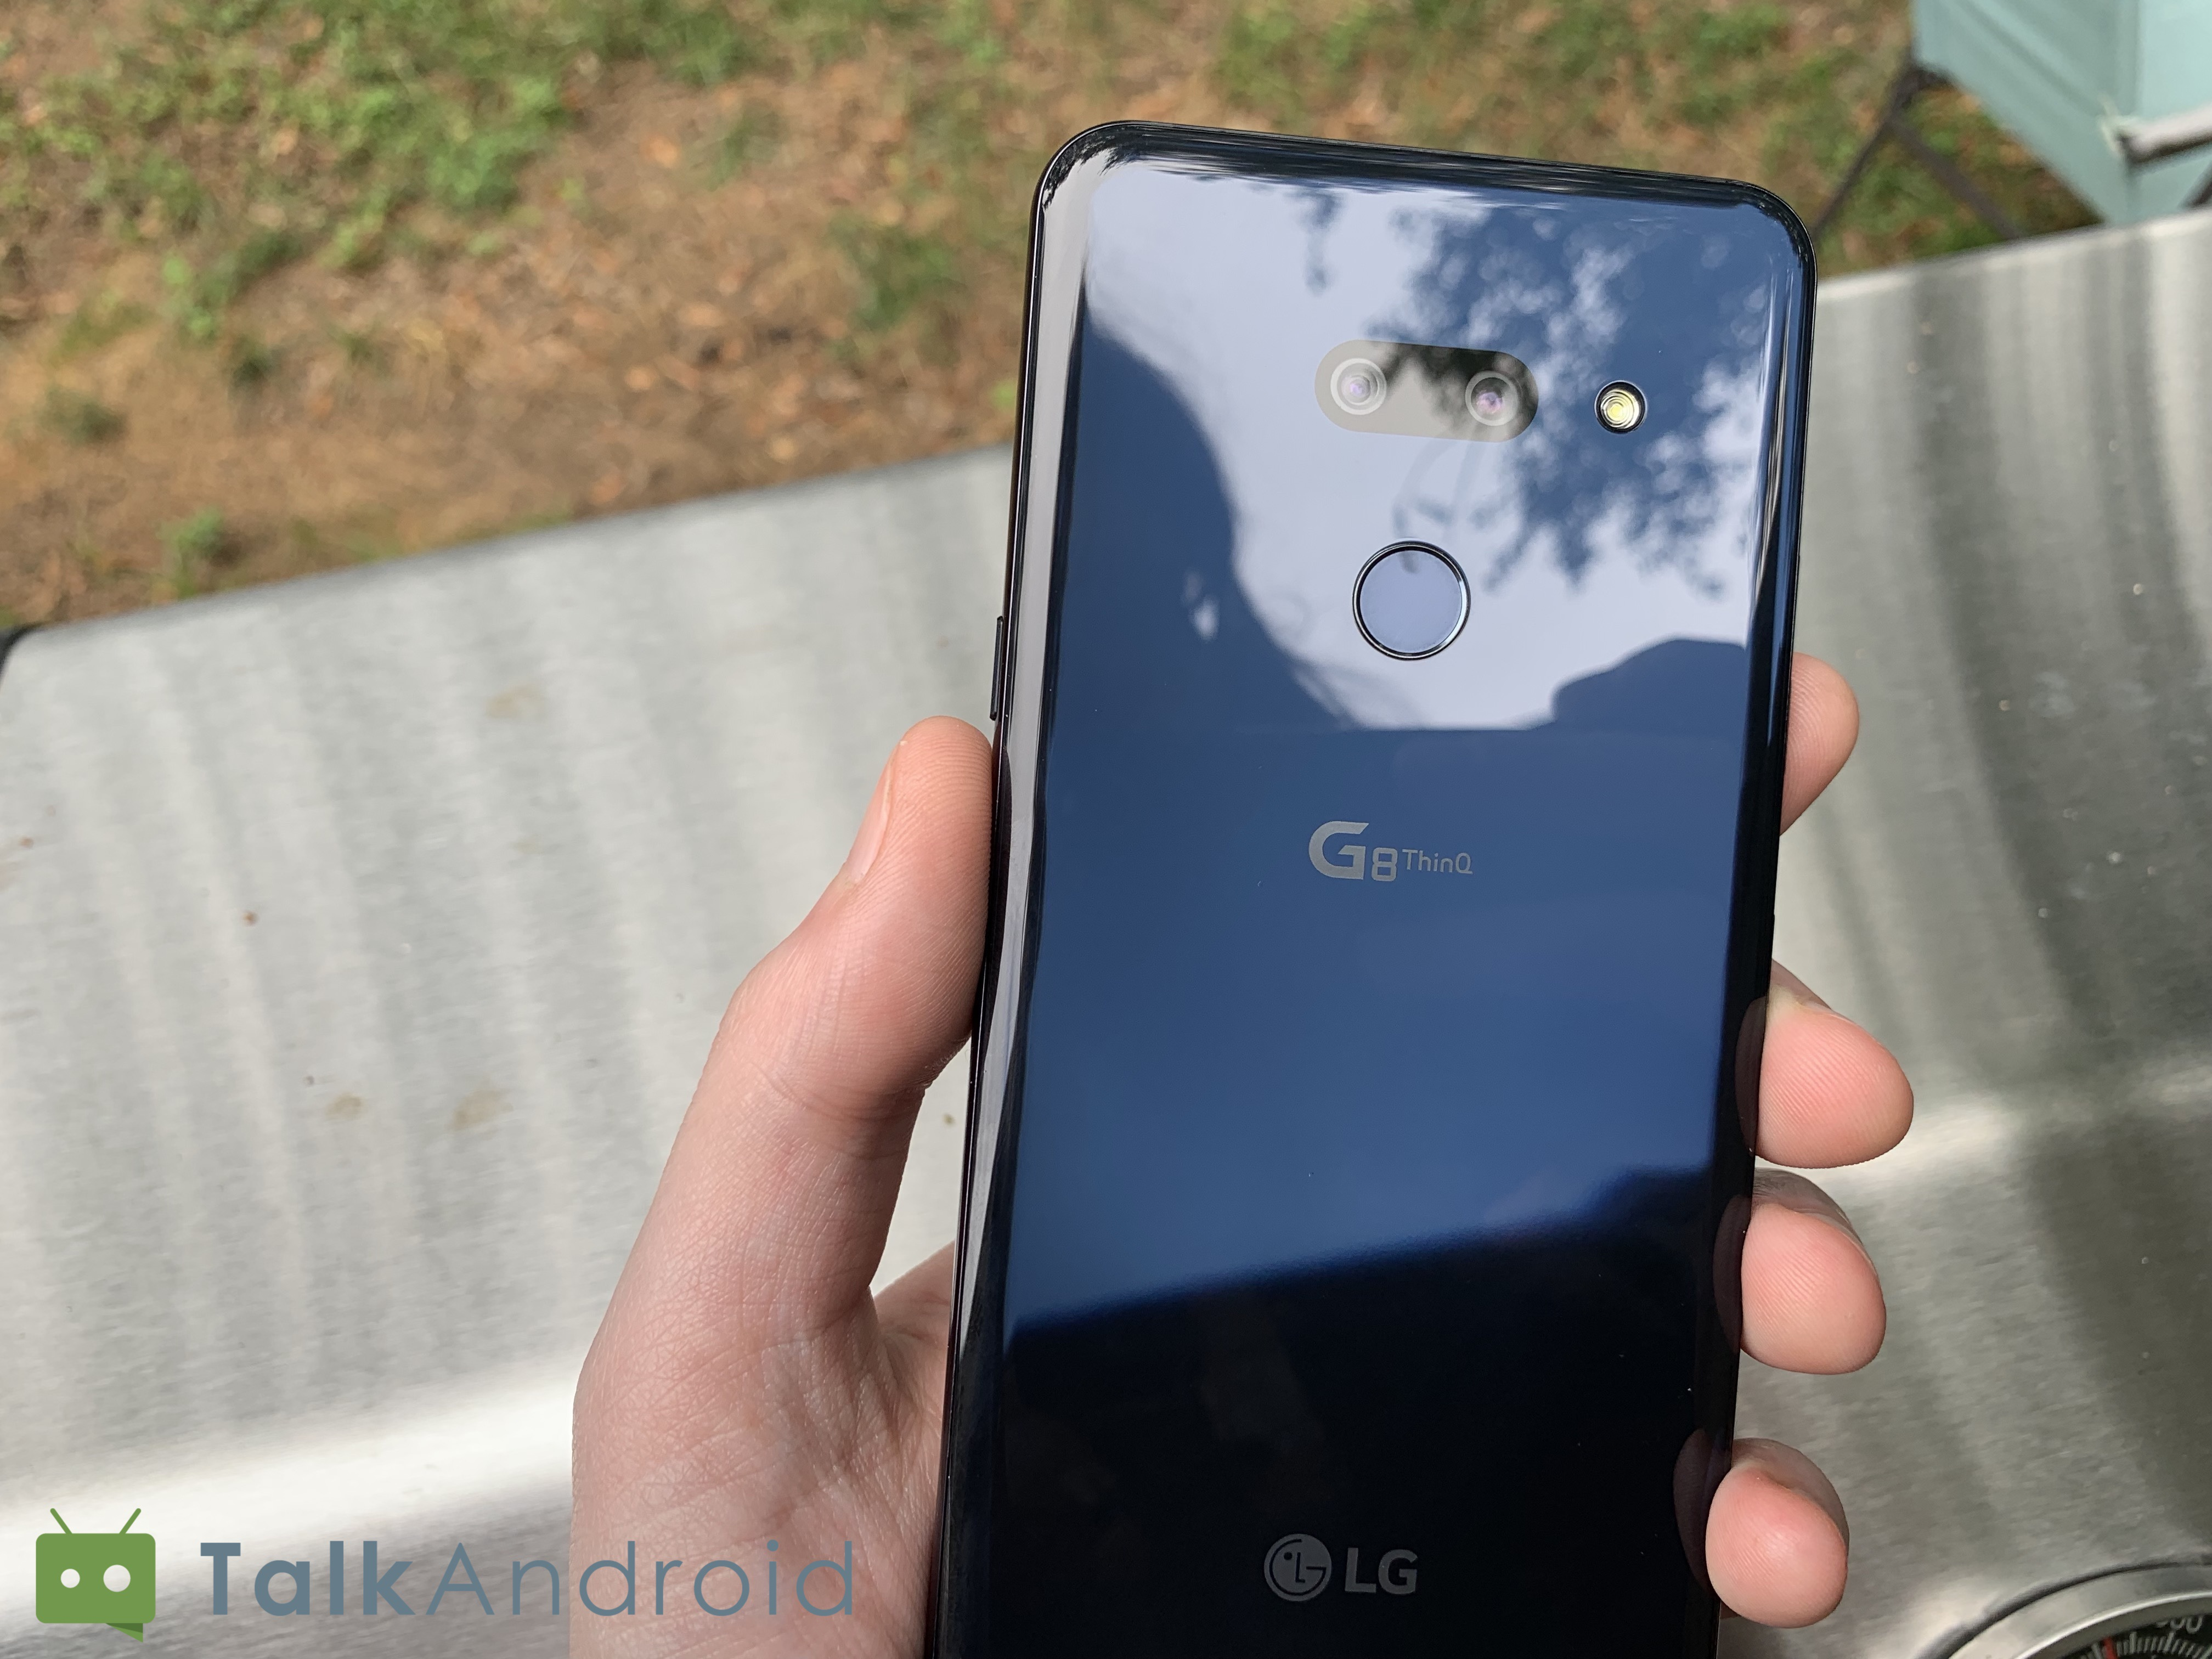 The LG G8 ThinQ is your best (and cheapest) Samsung Galaxy